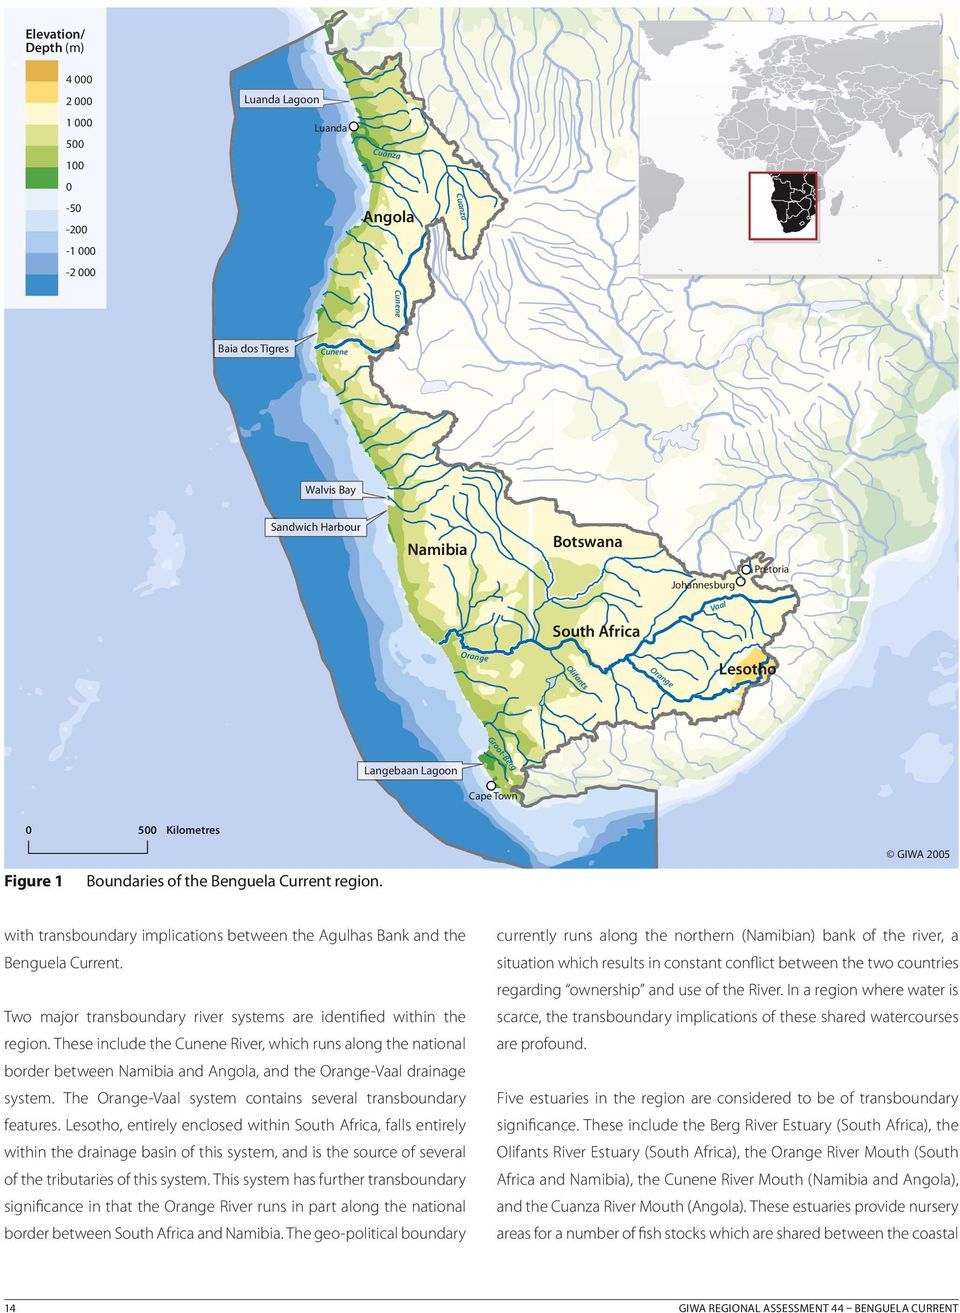 with transboundary implications between the Agulhas Bank and the currently runs along the northern (Namibian) bank of the river, a Benguela Current.